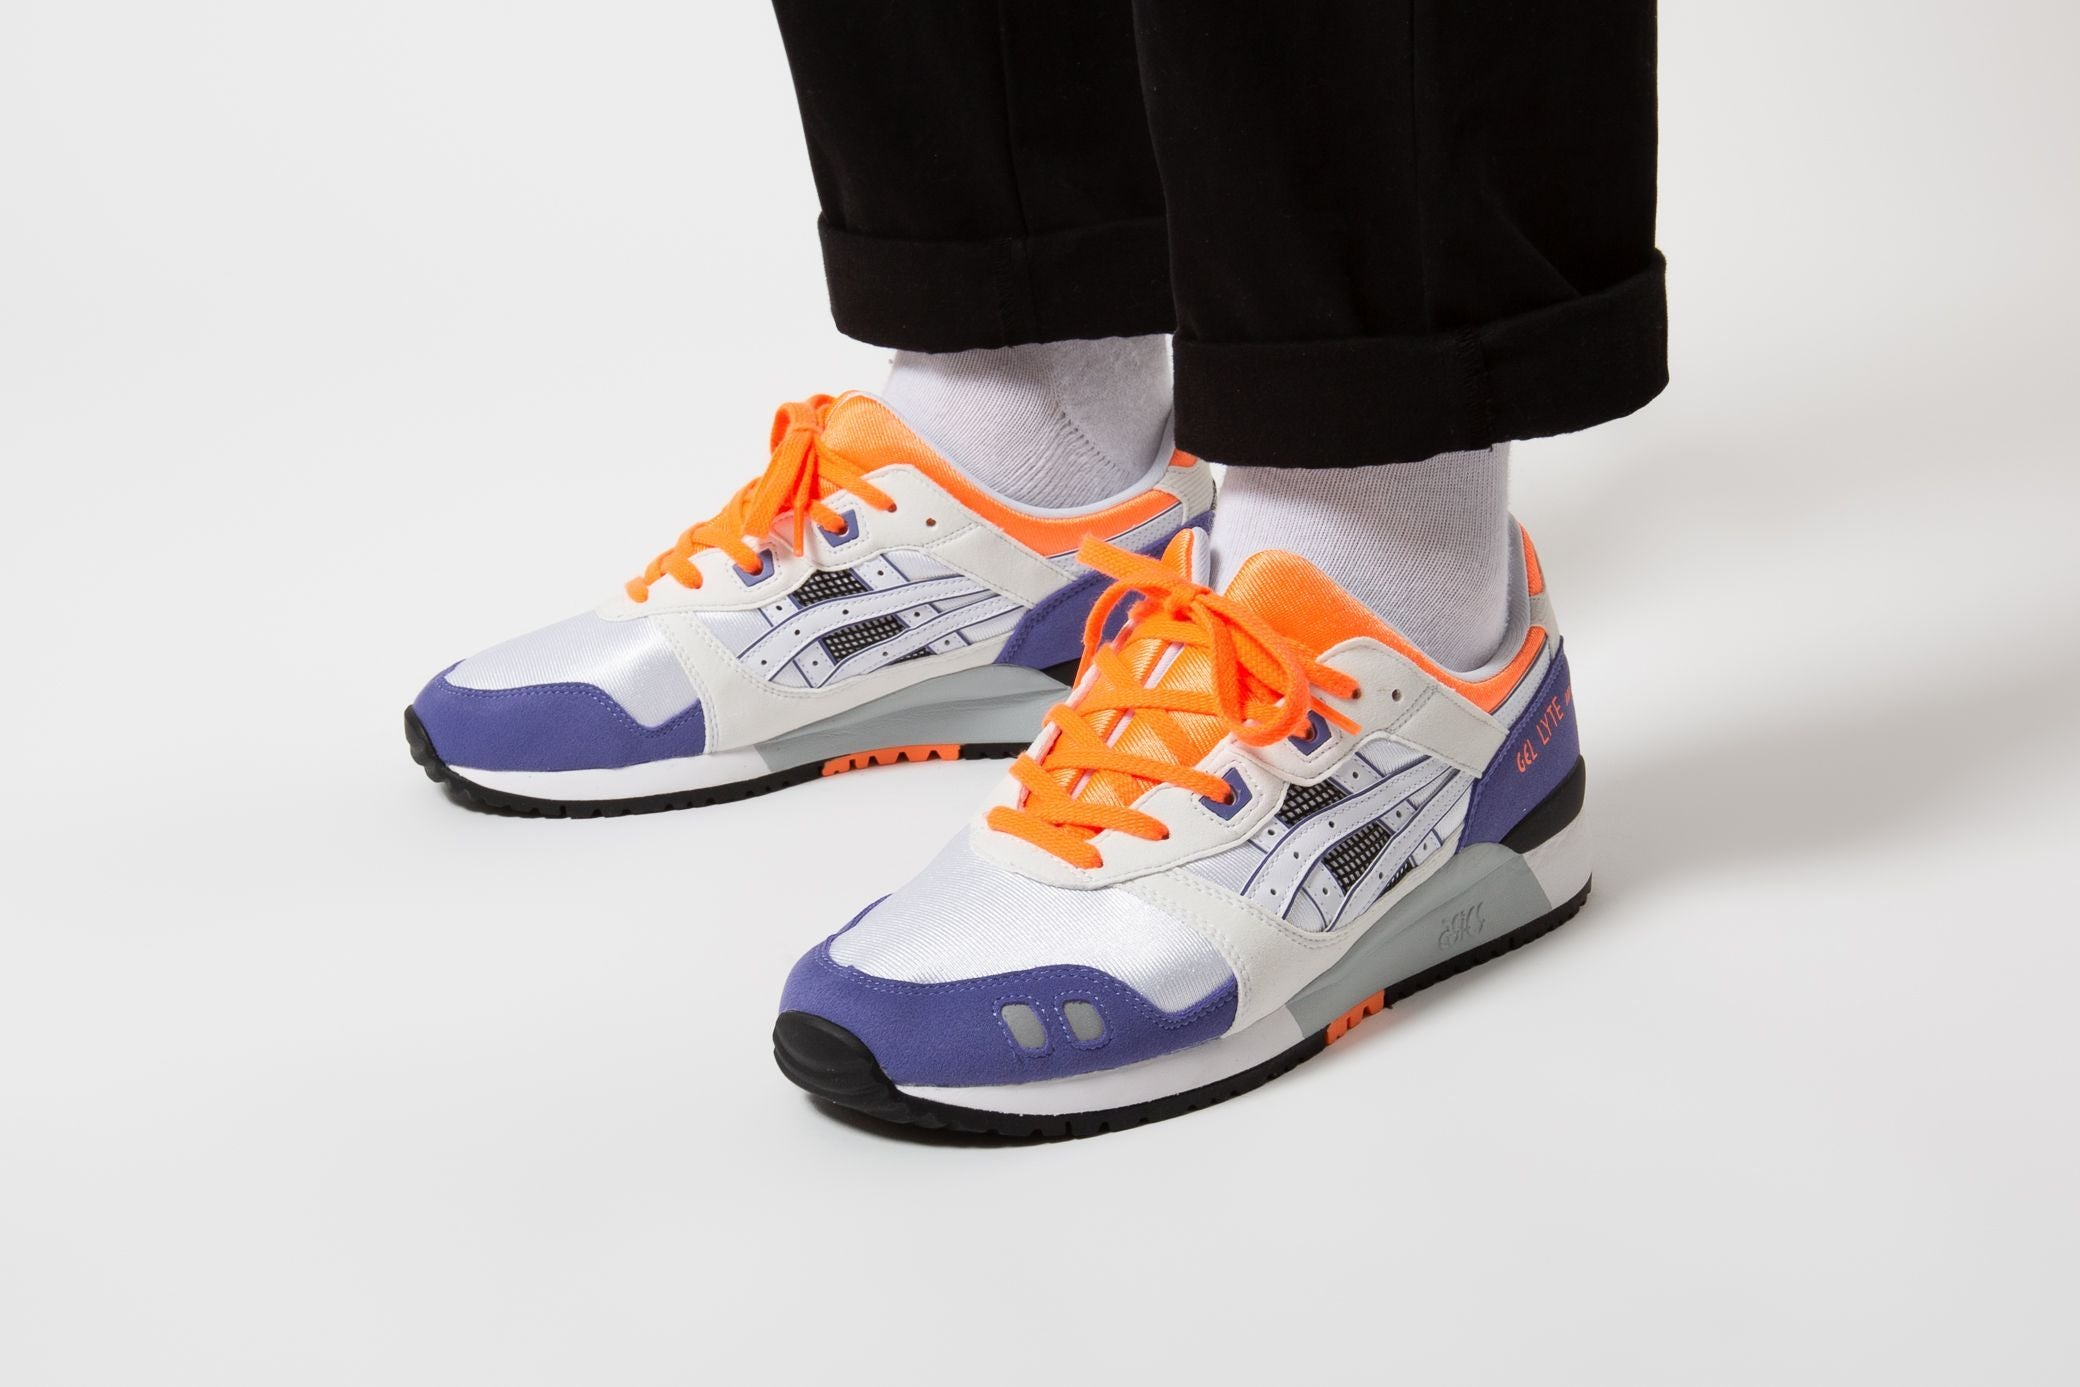 Asics Gel Lyte III OG - White/Orange #1191A266-102-Preorder Item-Navy Selected Shop